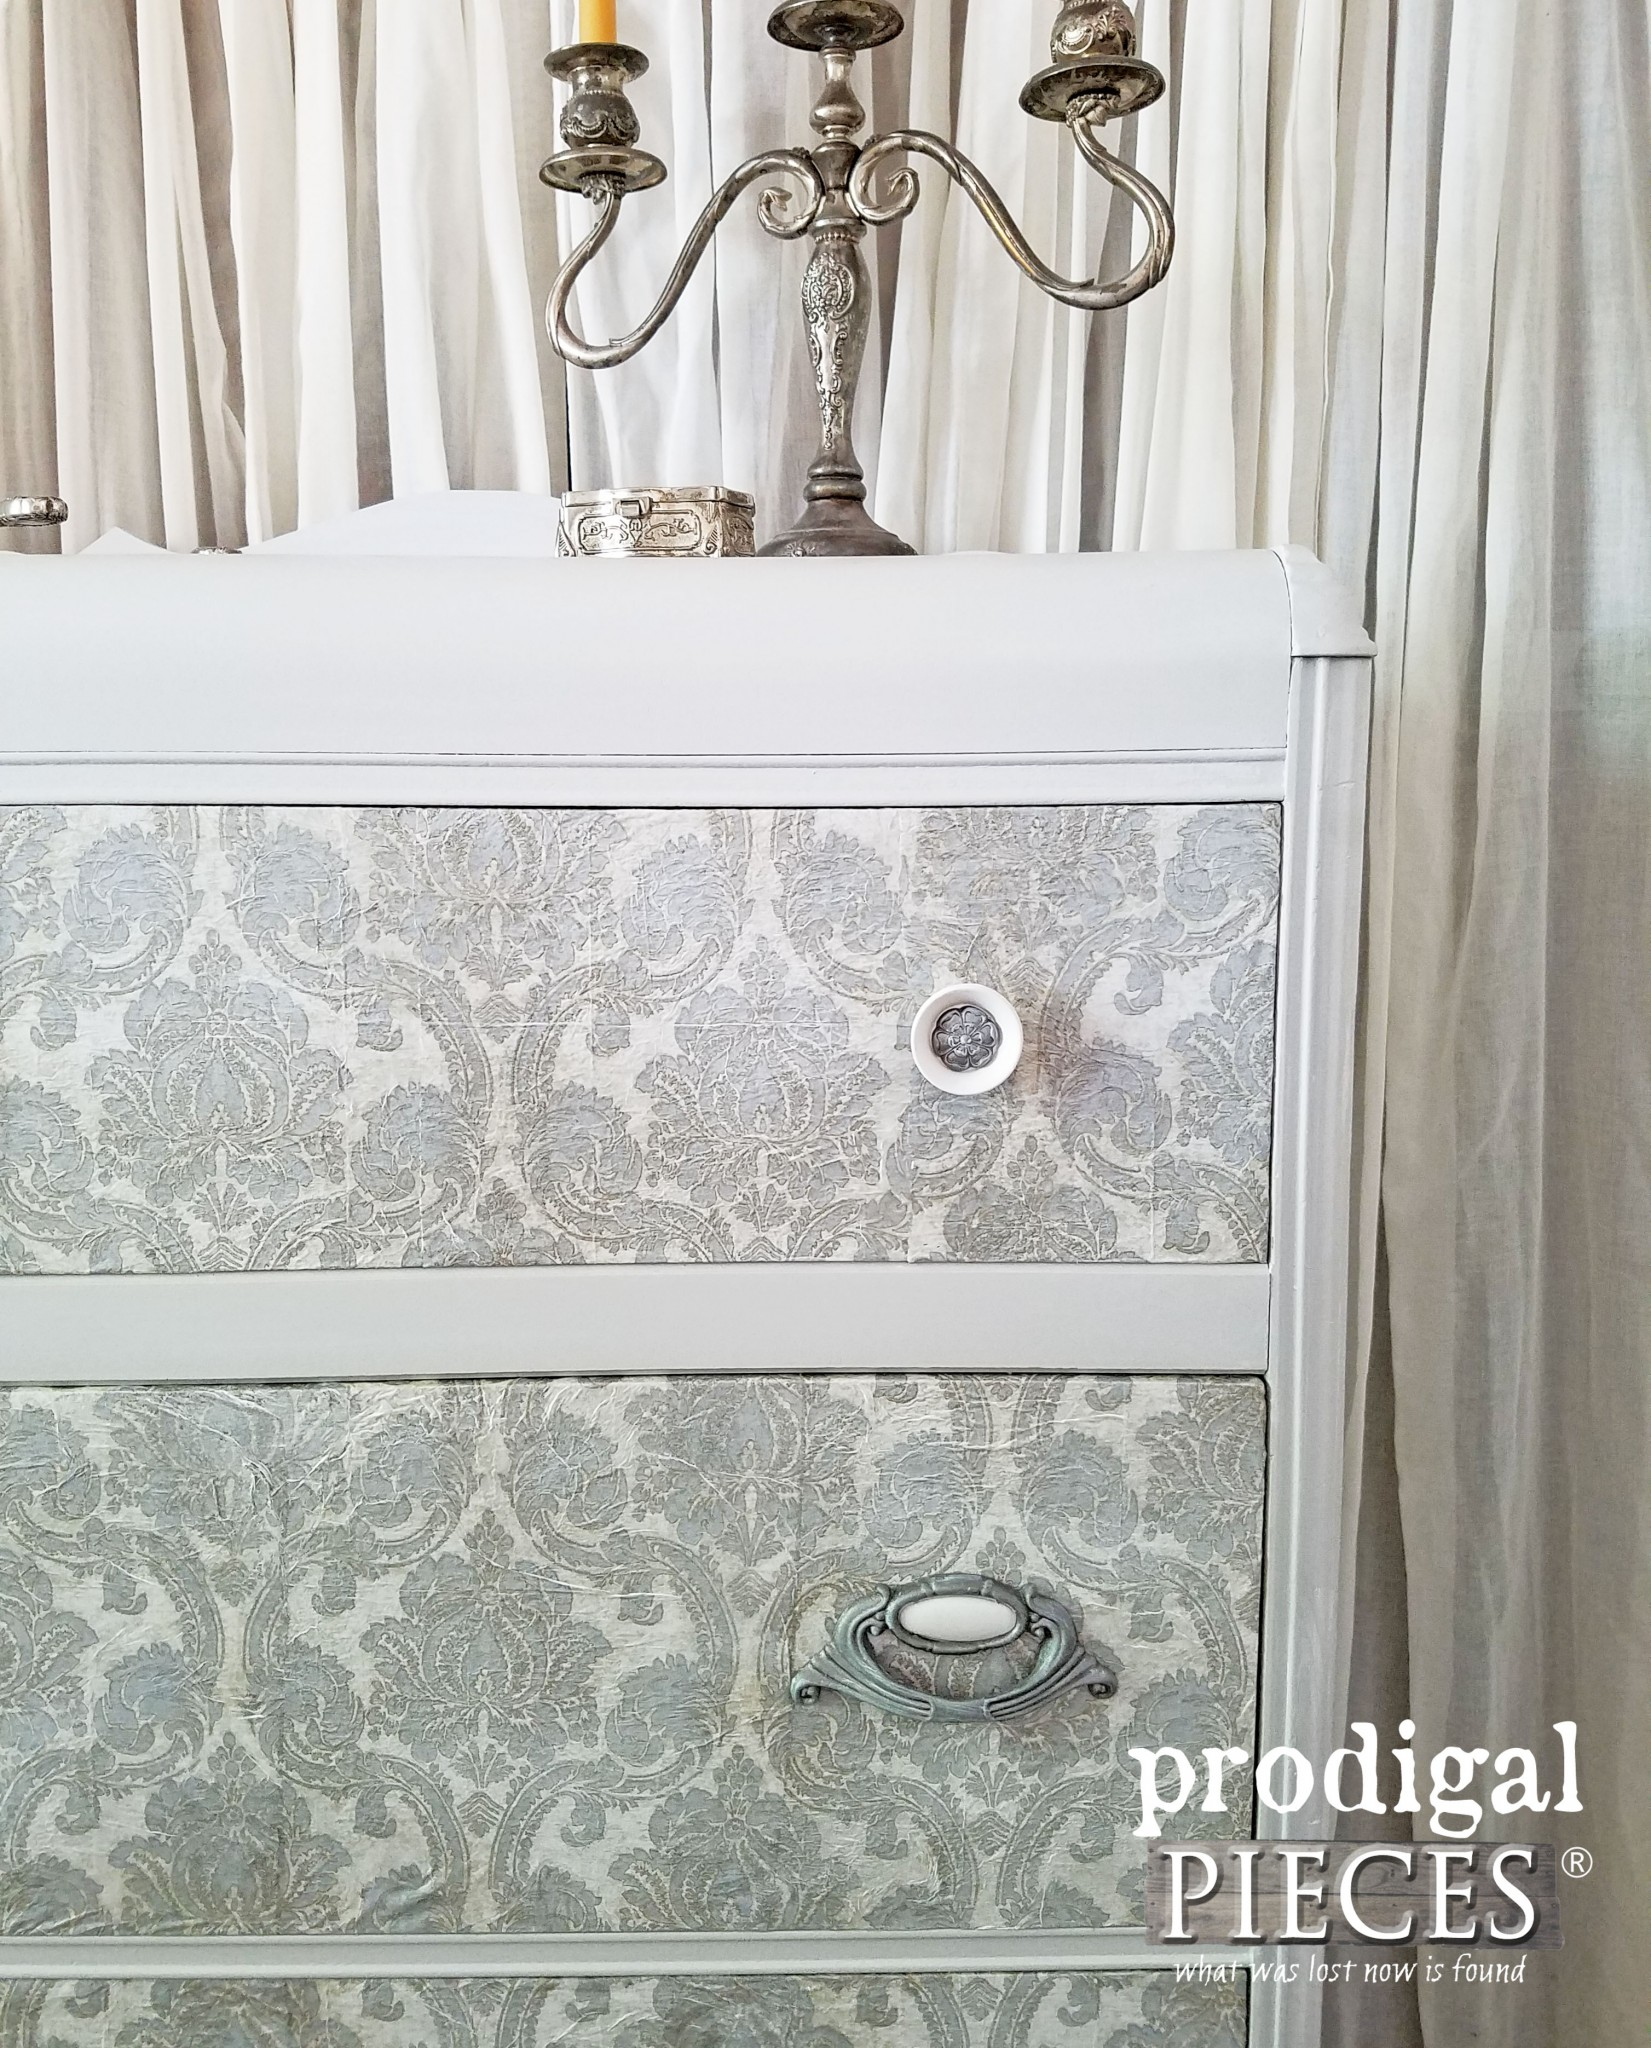 Decoupaged Drawer Fronts on Art Deco Waterfall Chest by Prodigal Pieces | www.prodigalpieces.com